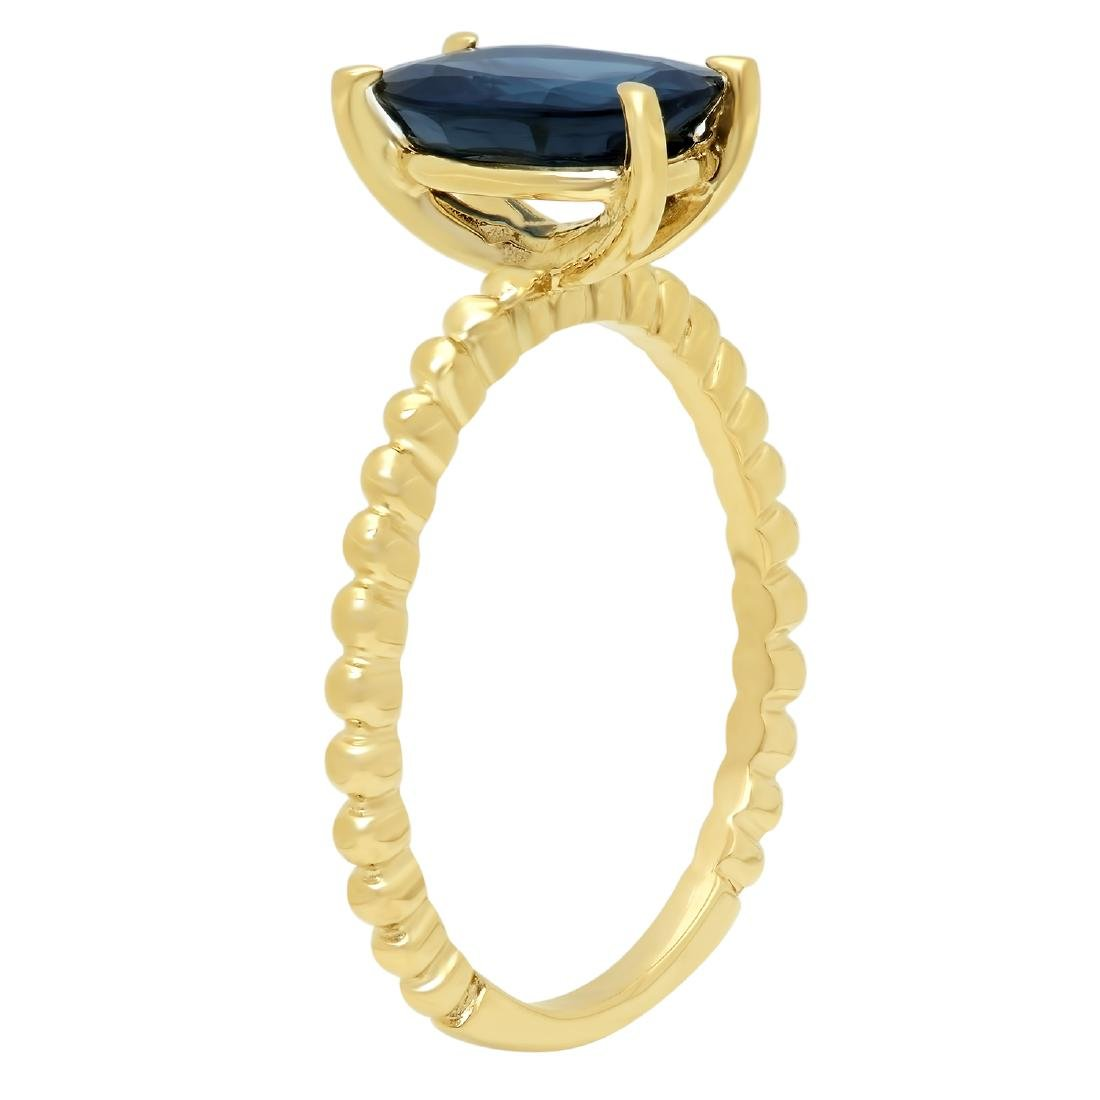 2.00 Carat Natural Sapphire 18K Solid Yellow Gold Ring - 2